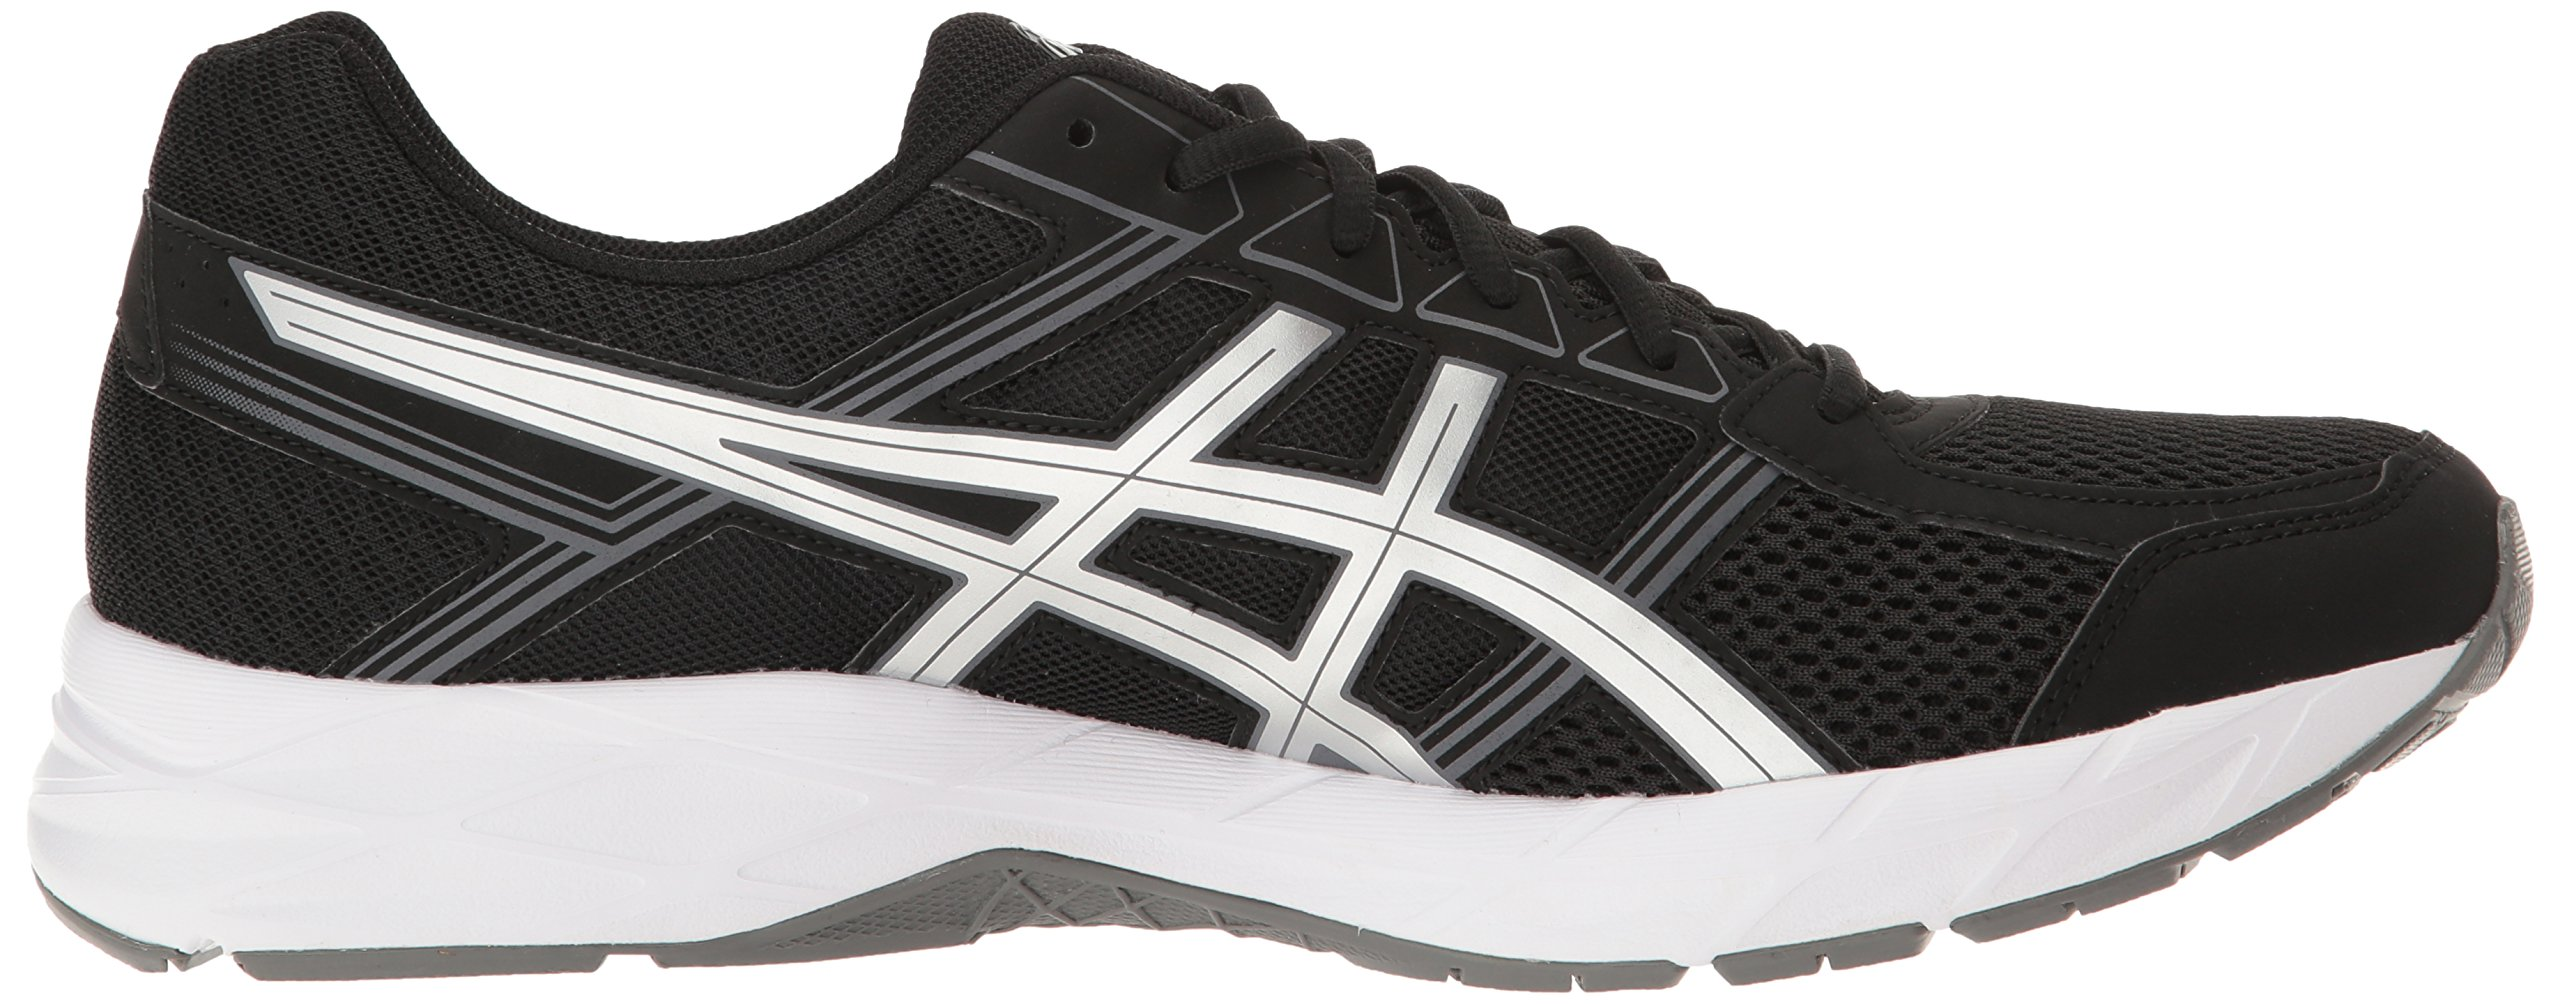 ASICS Men's Gel-Contend 4 Running Shoe, Black/Silver/Carbon, 7.5 M US by ASICS (Image #7)